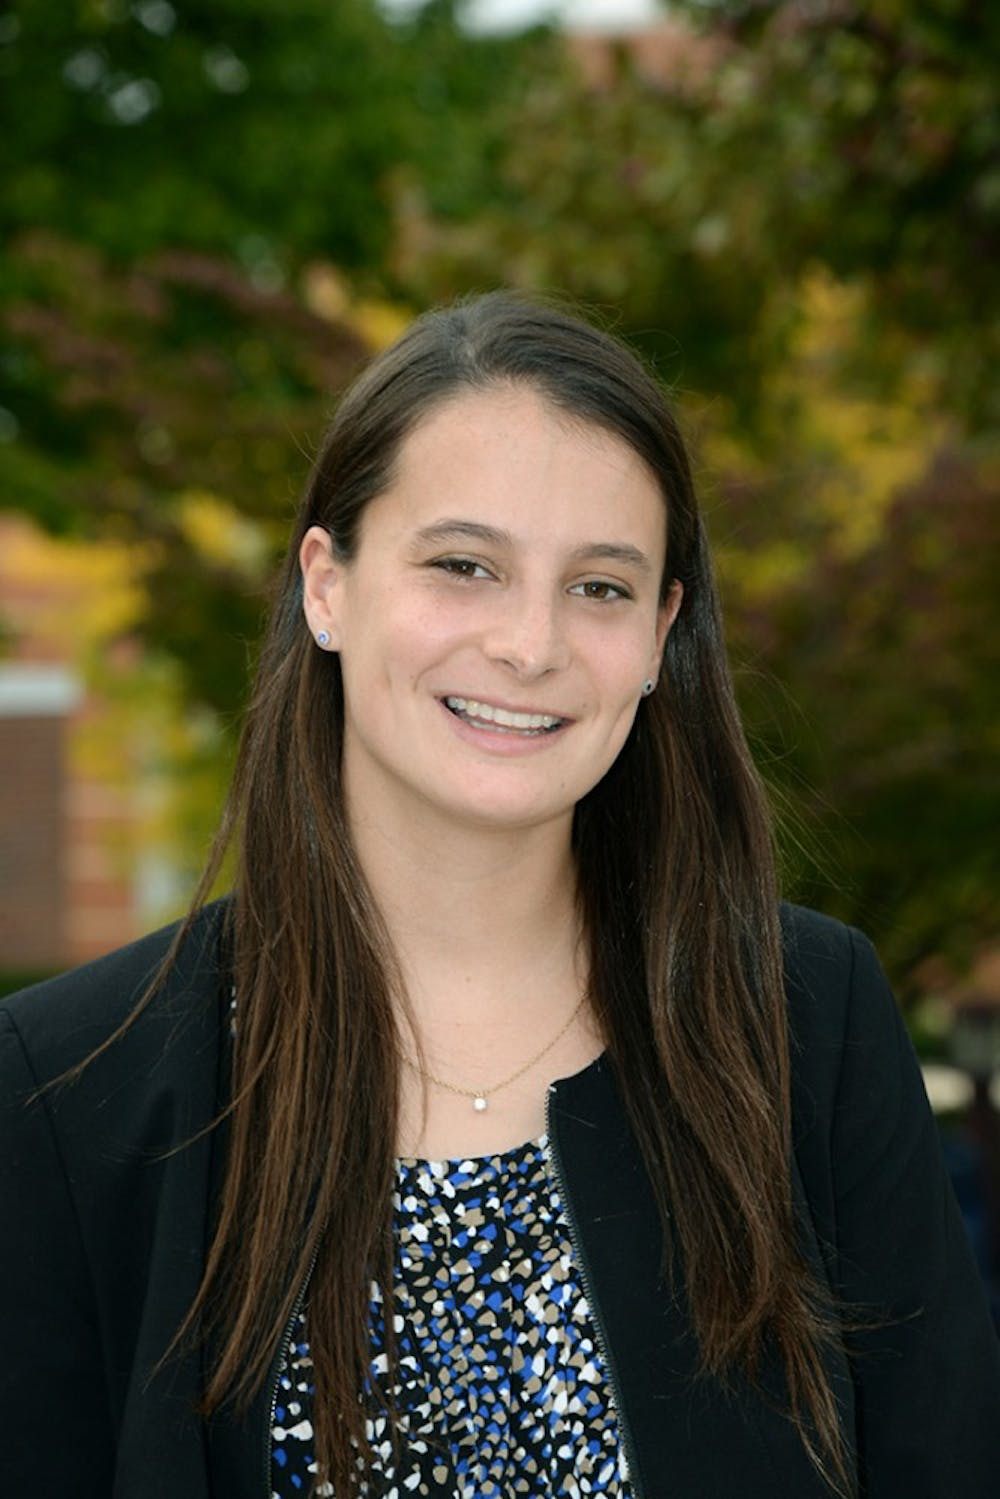 Student steps up to secretary position